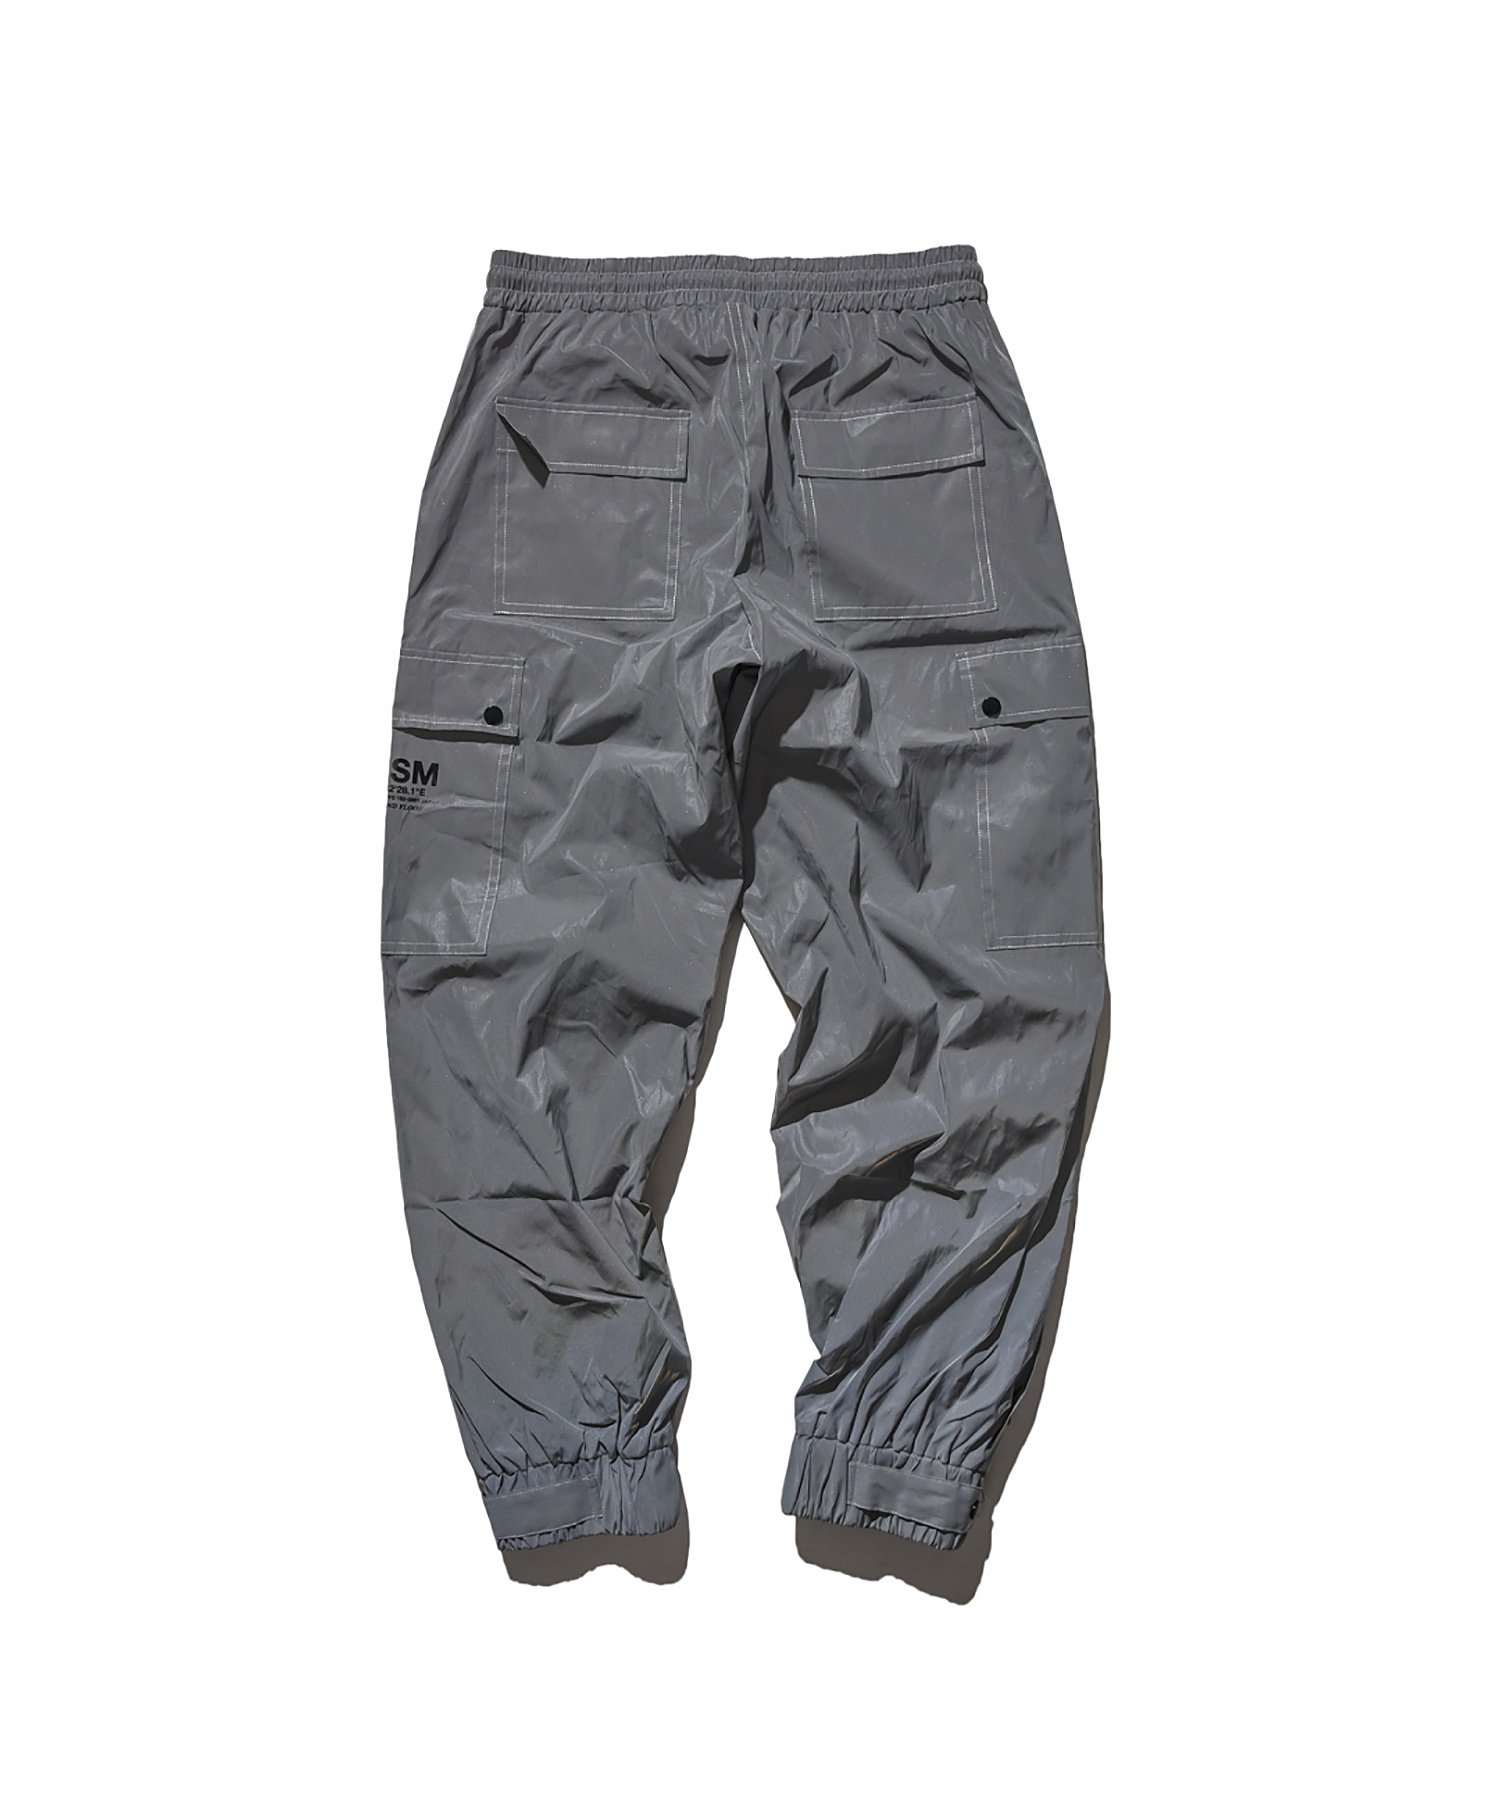 DUALISM BUTTON REFLECT CARGO PANTS (SILVER)